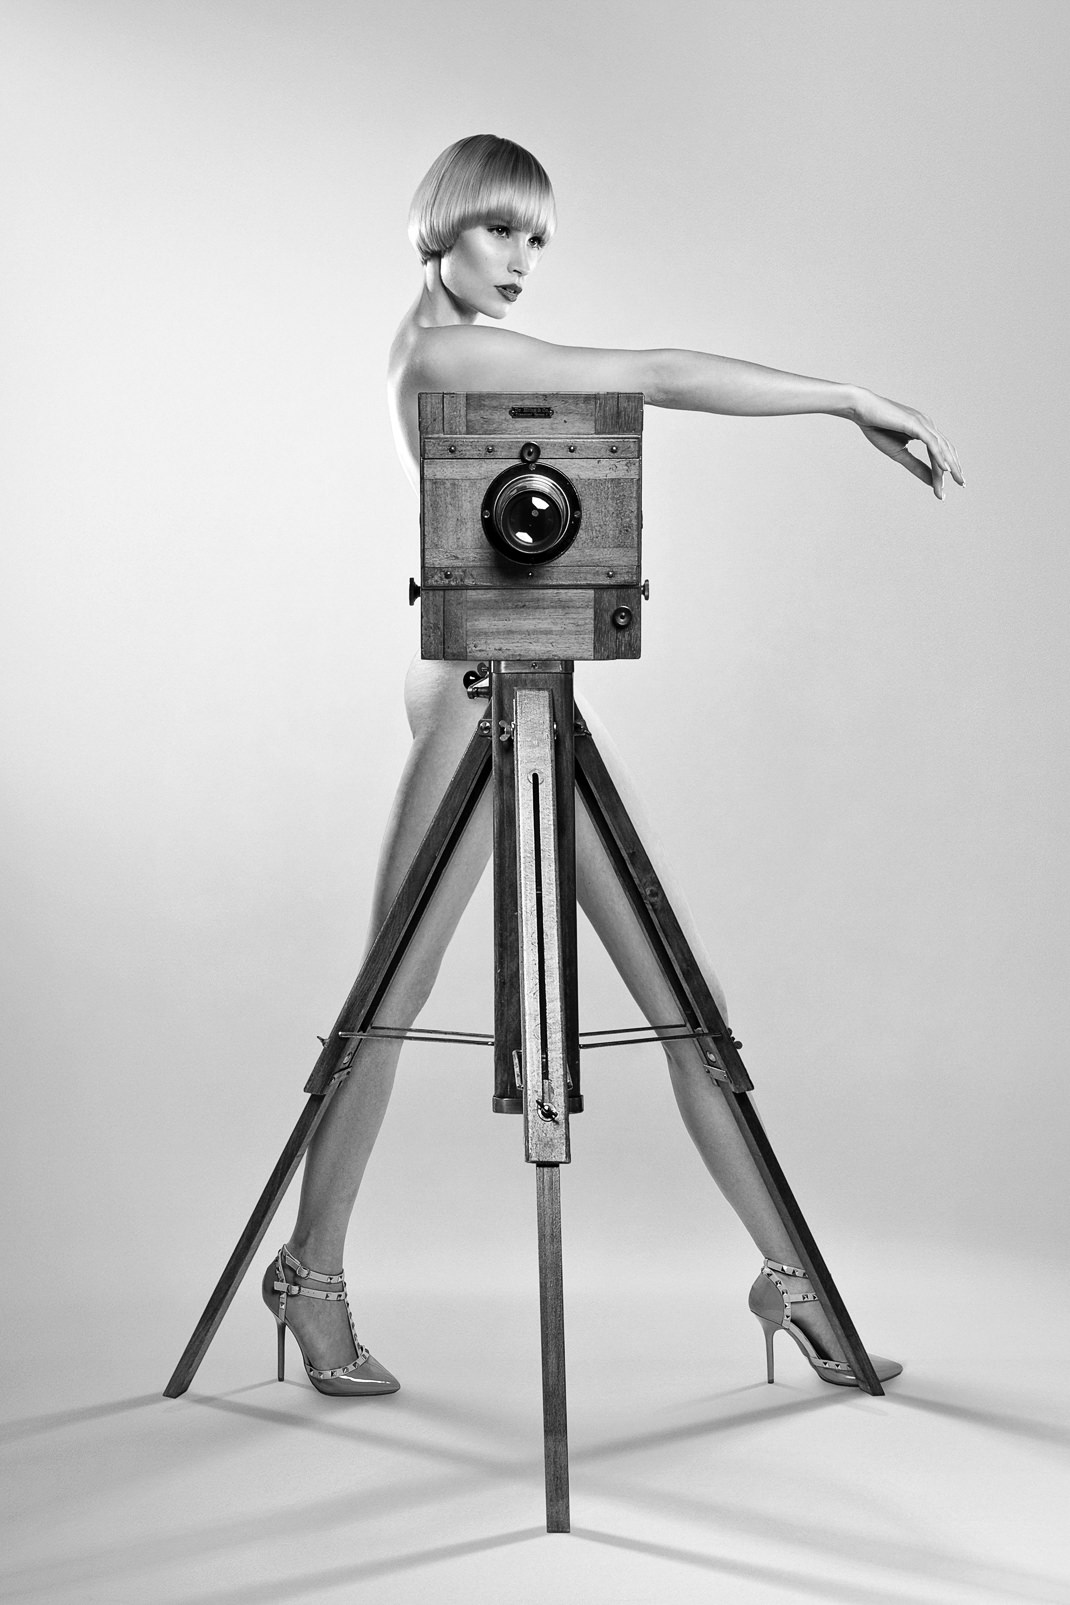 Two Beauties - Jane & Dr. Höhn & Co Plate Camera - Tribute To Gisele - Markus Hertzsch - Camera - Girl